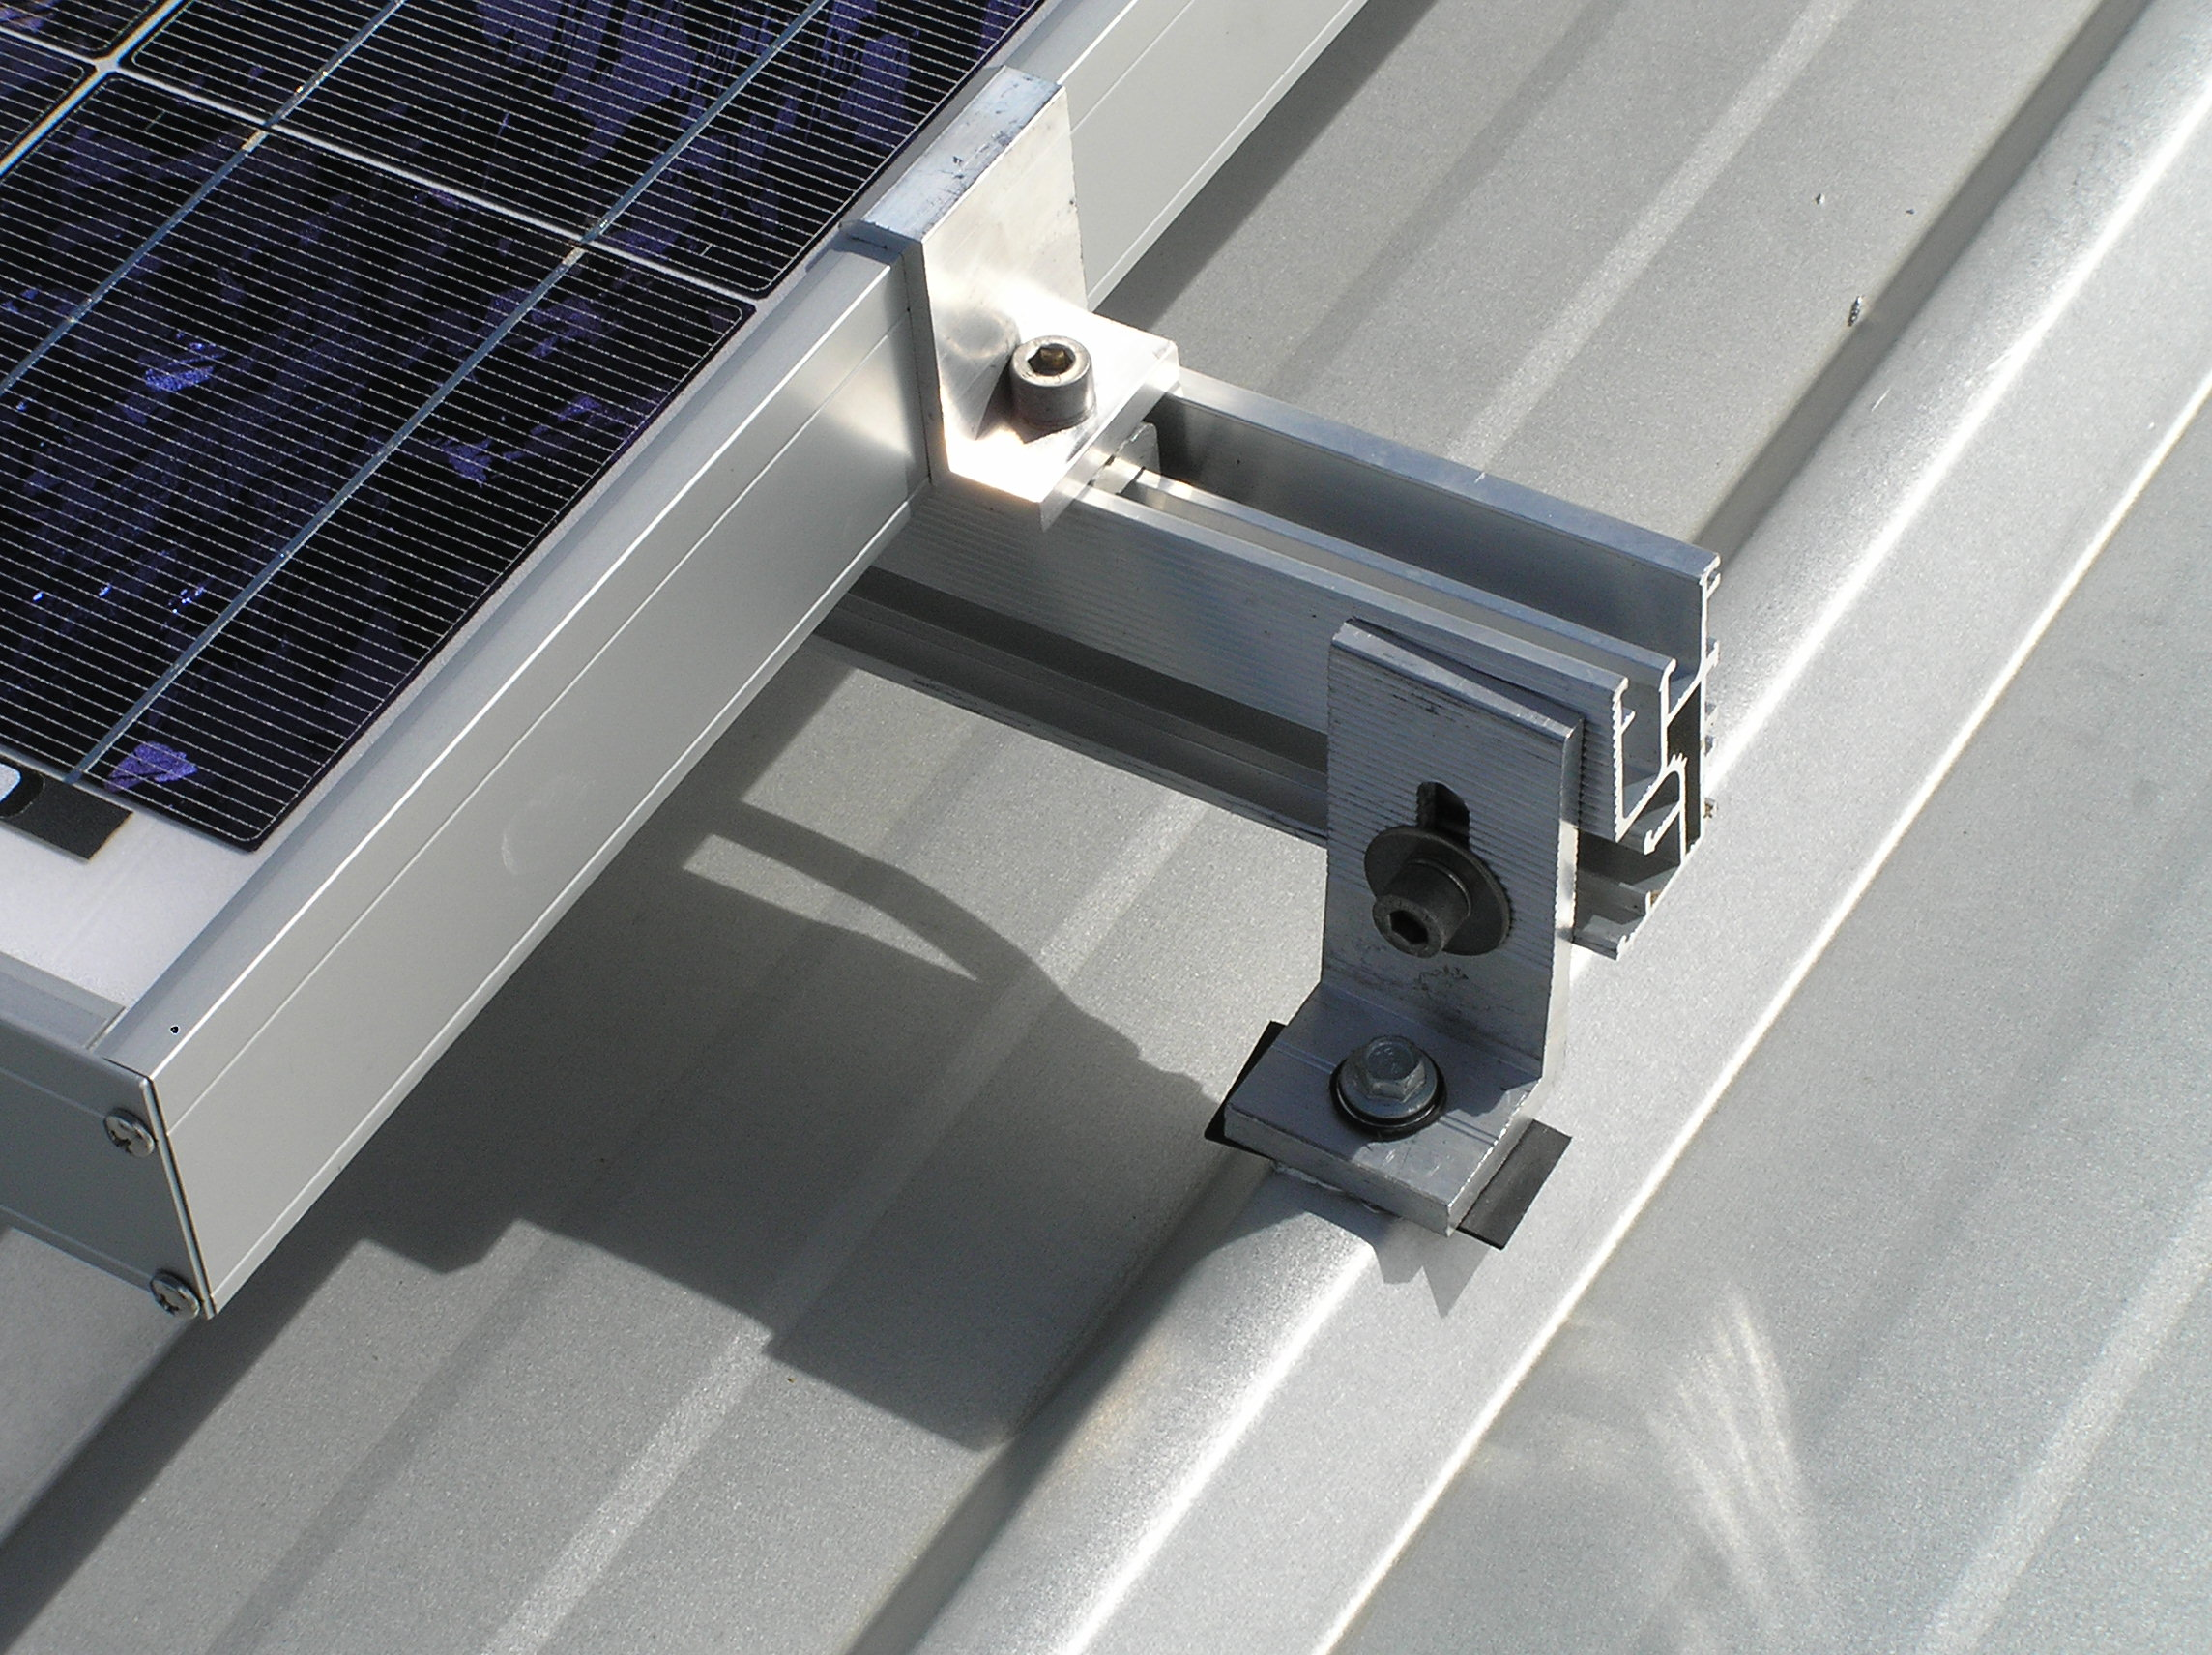 Adjustable end clamps for solar panel 25-45mm